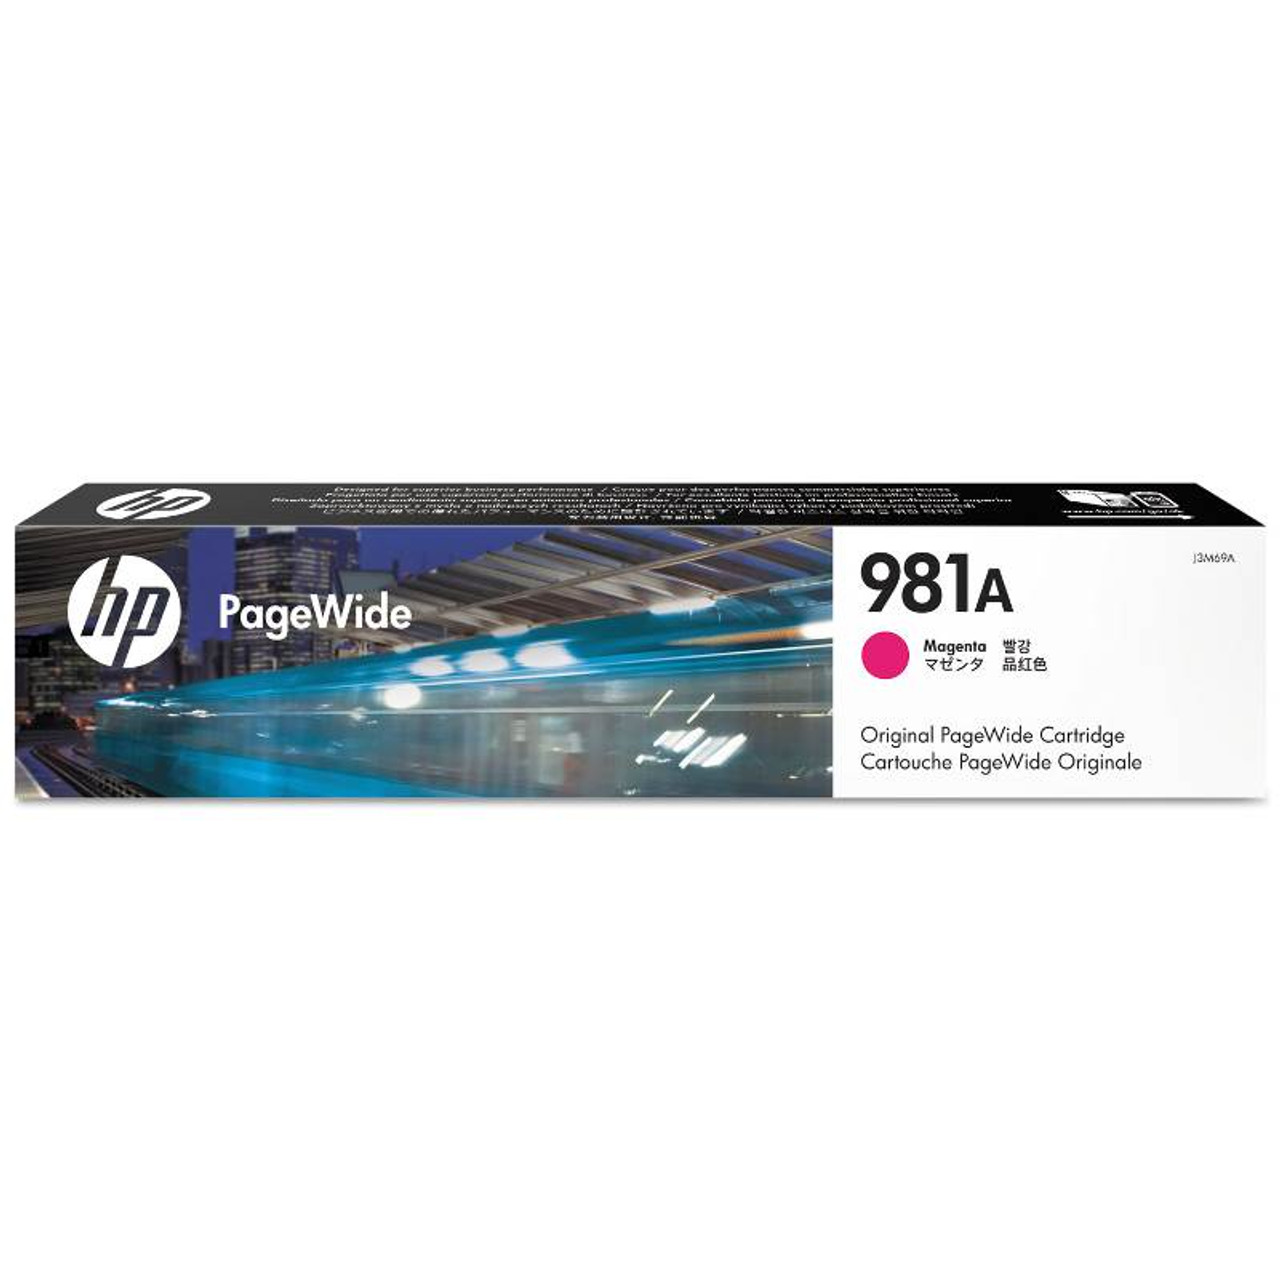 Image for HP 981A Magenta Original PageWide Cartridge (J3M69A) CX Computer Superstore